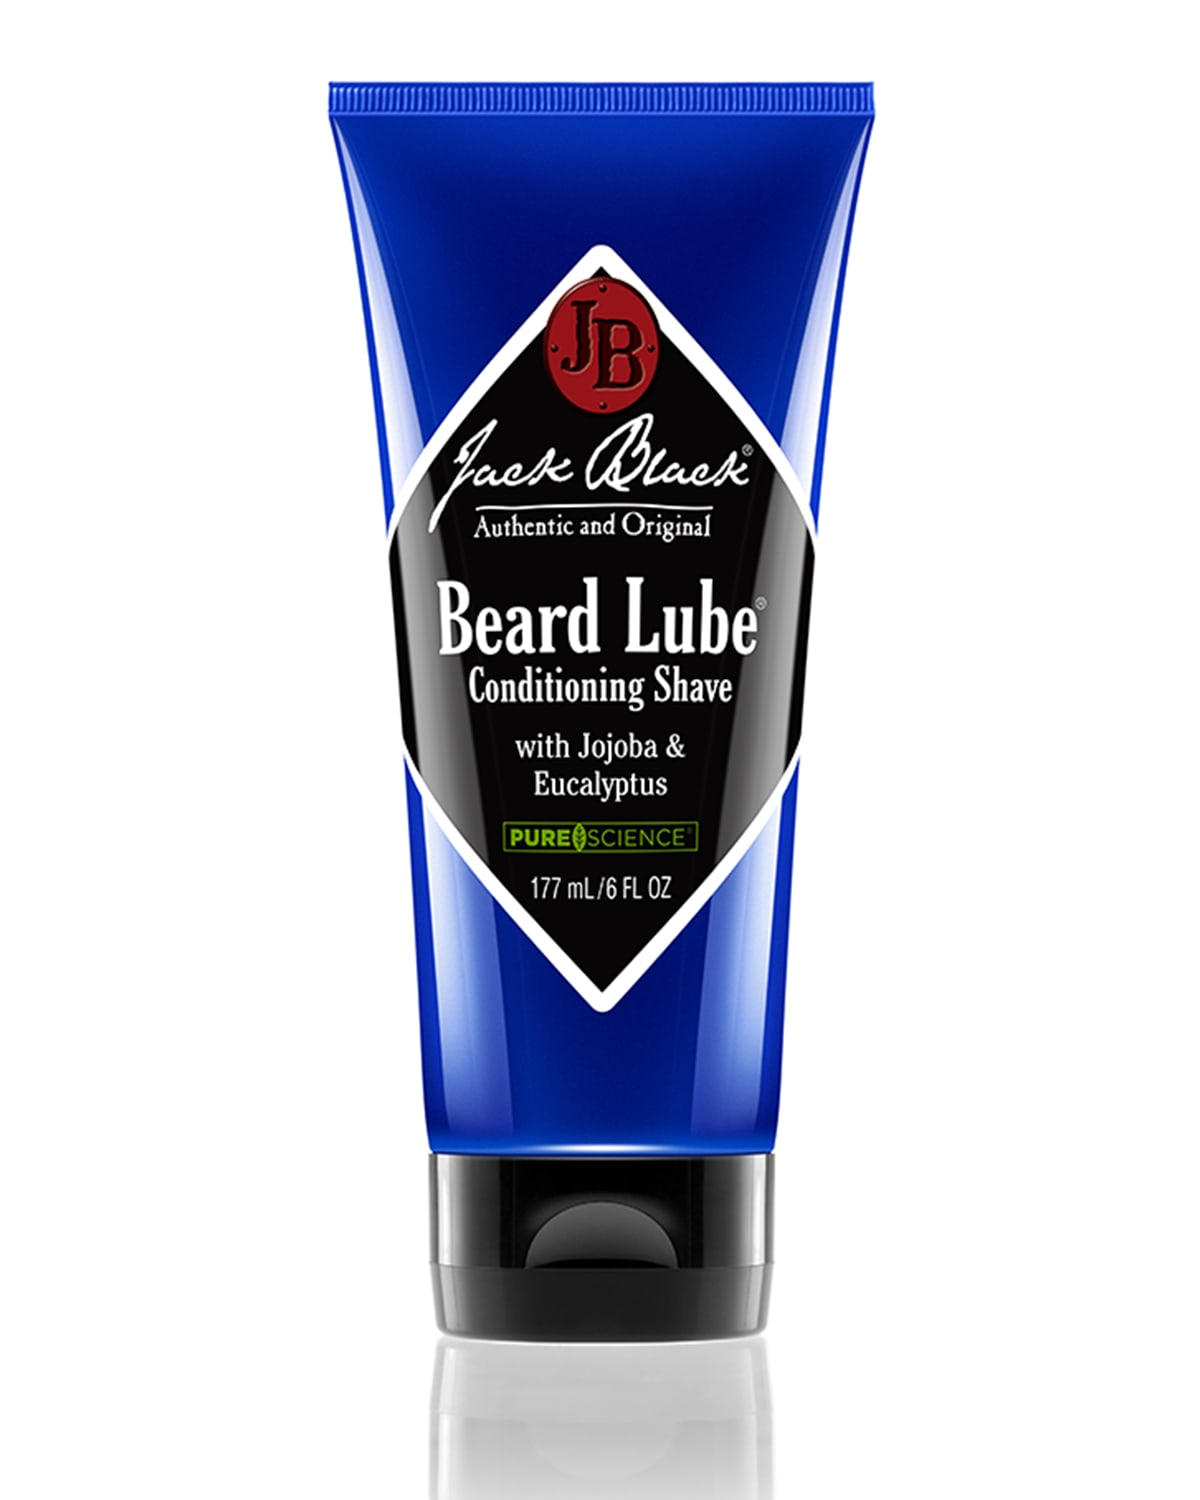 6 oz. Beard Lube Conditioning Shave Balm